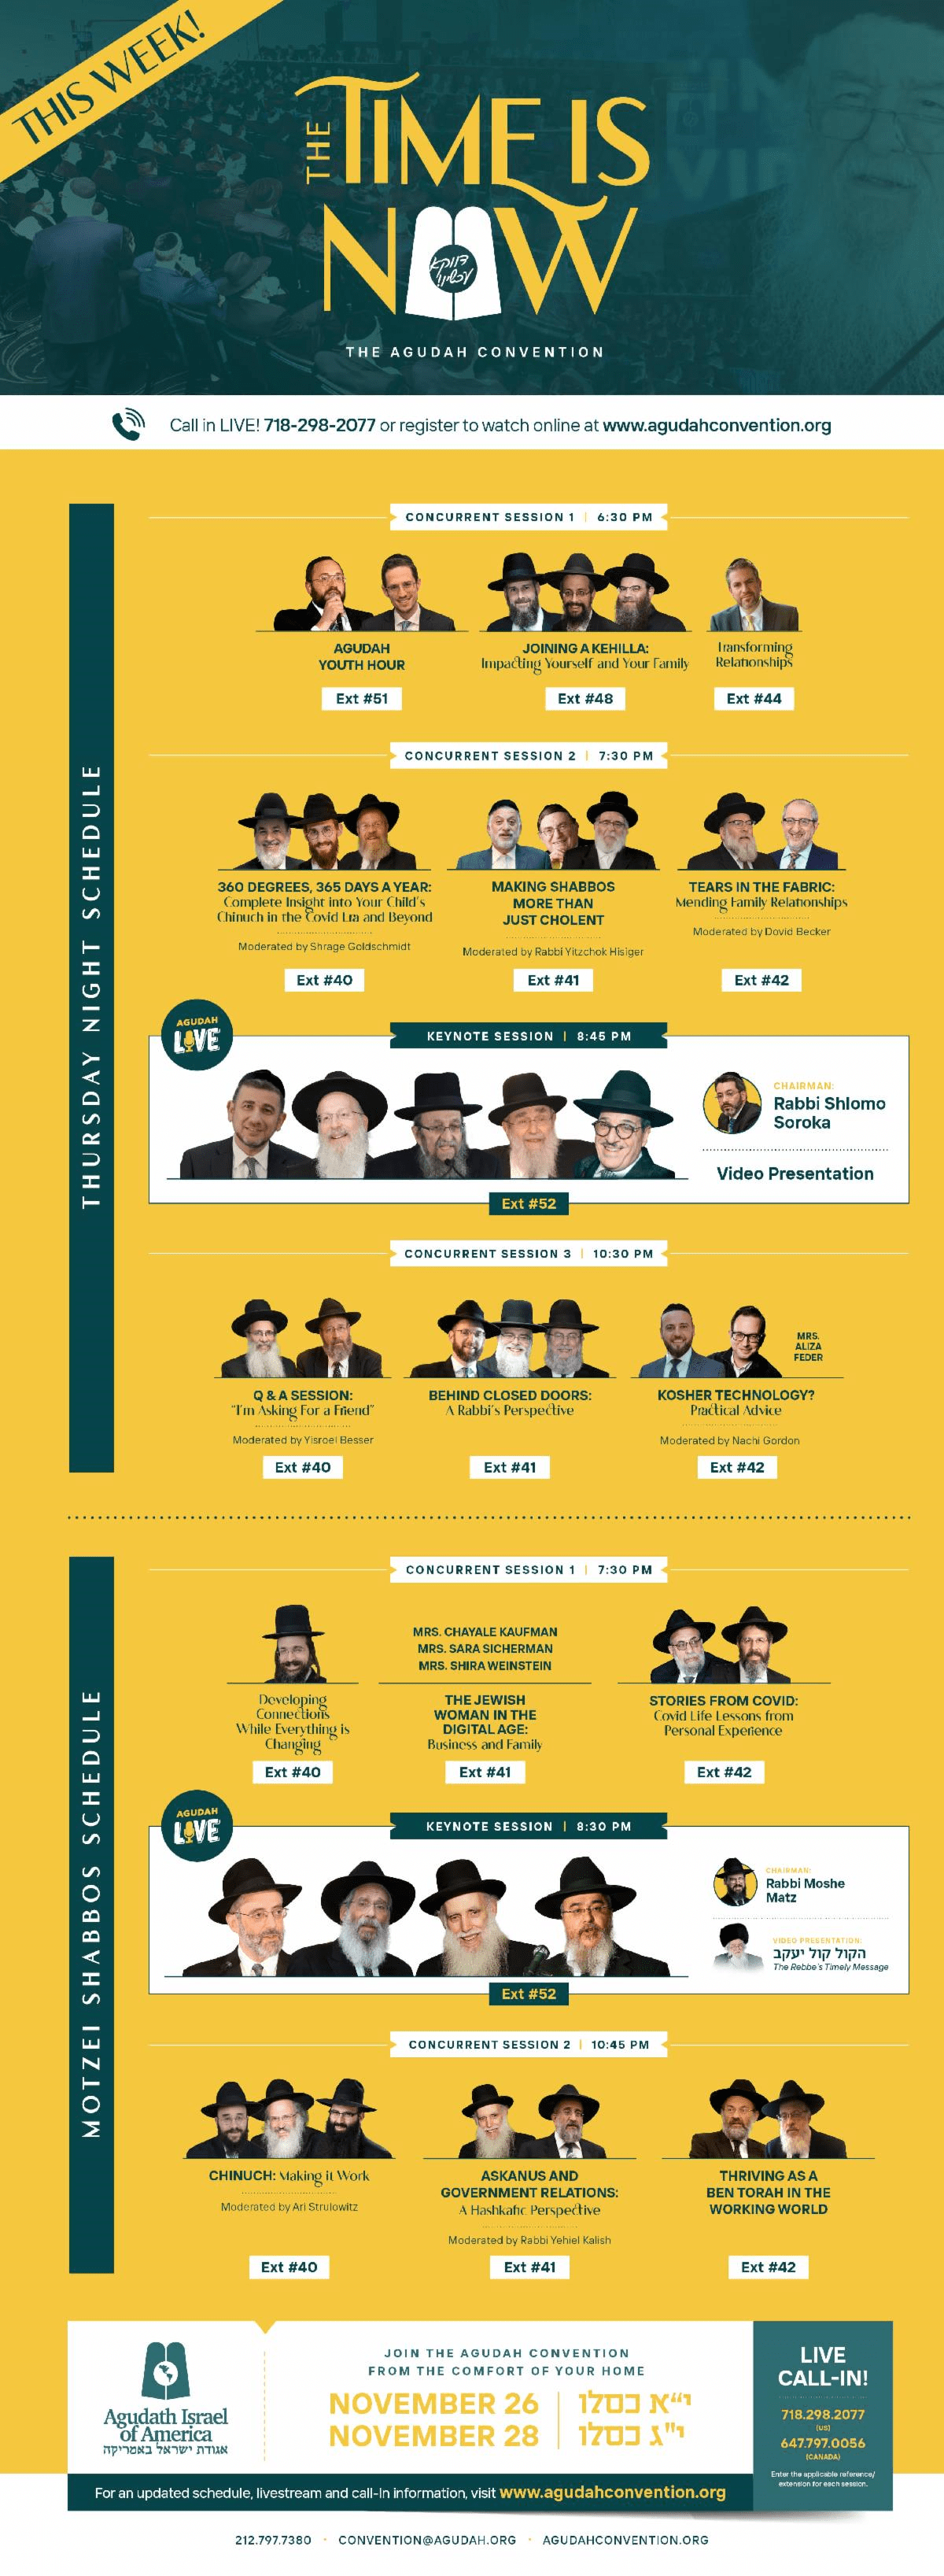 The Agudah Convention: The Time is Now 1